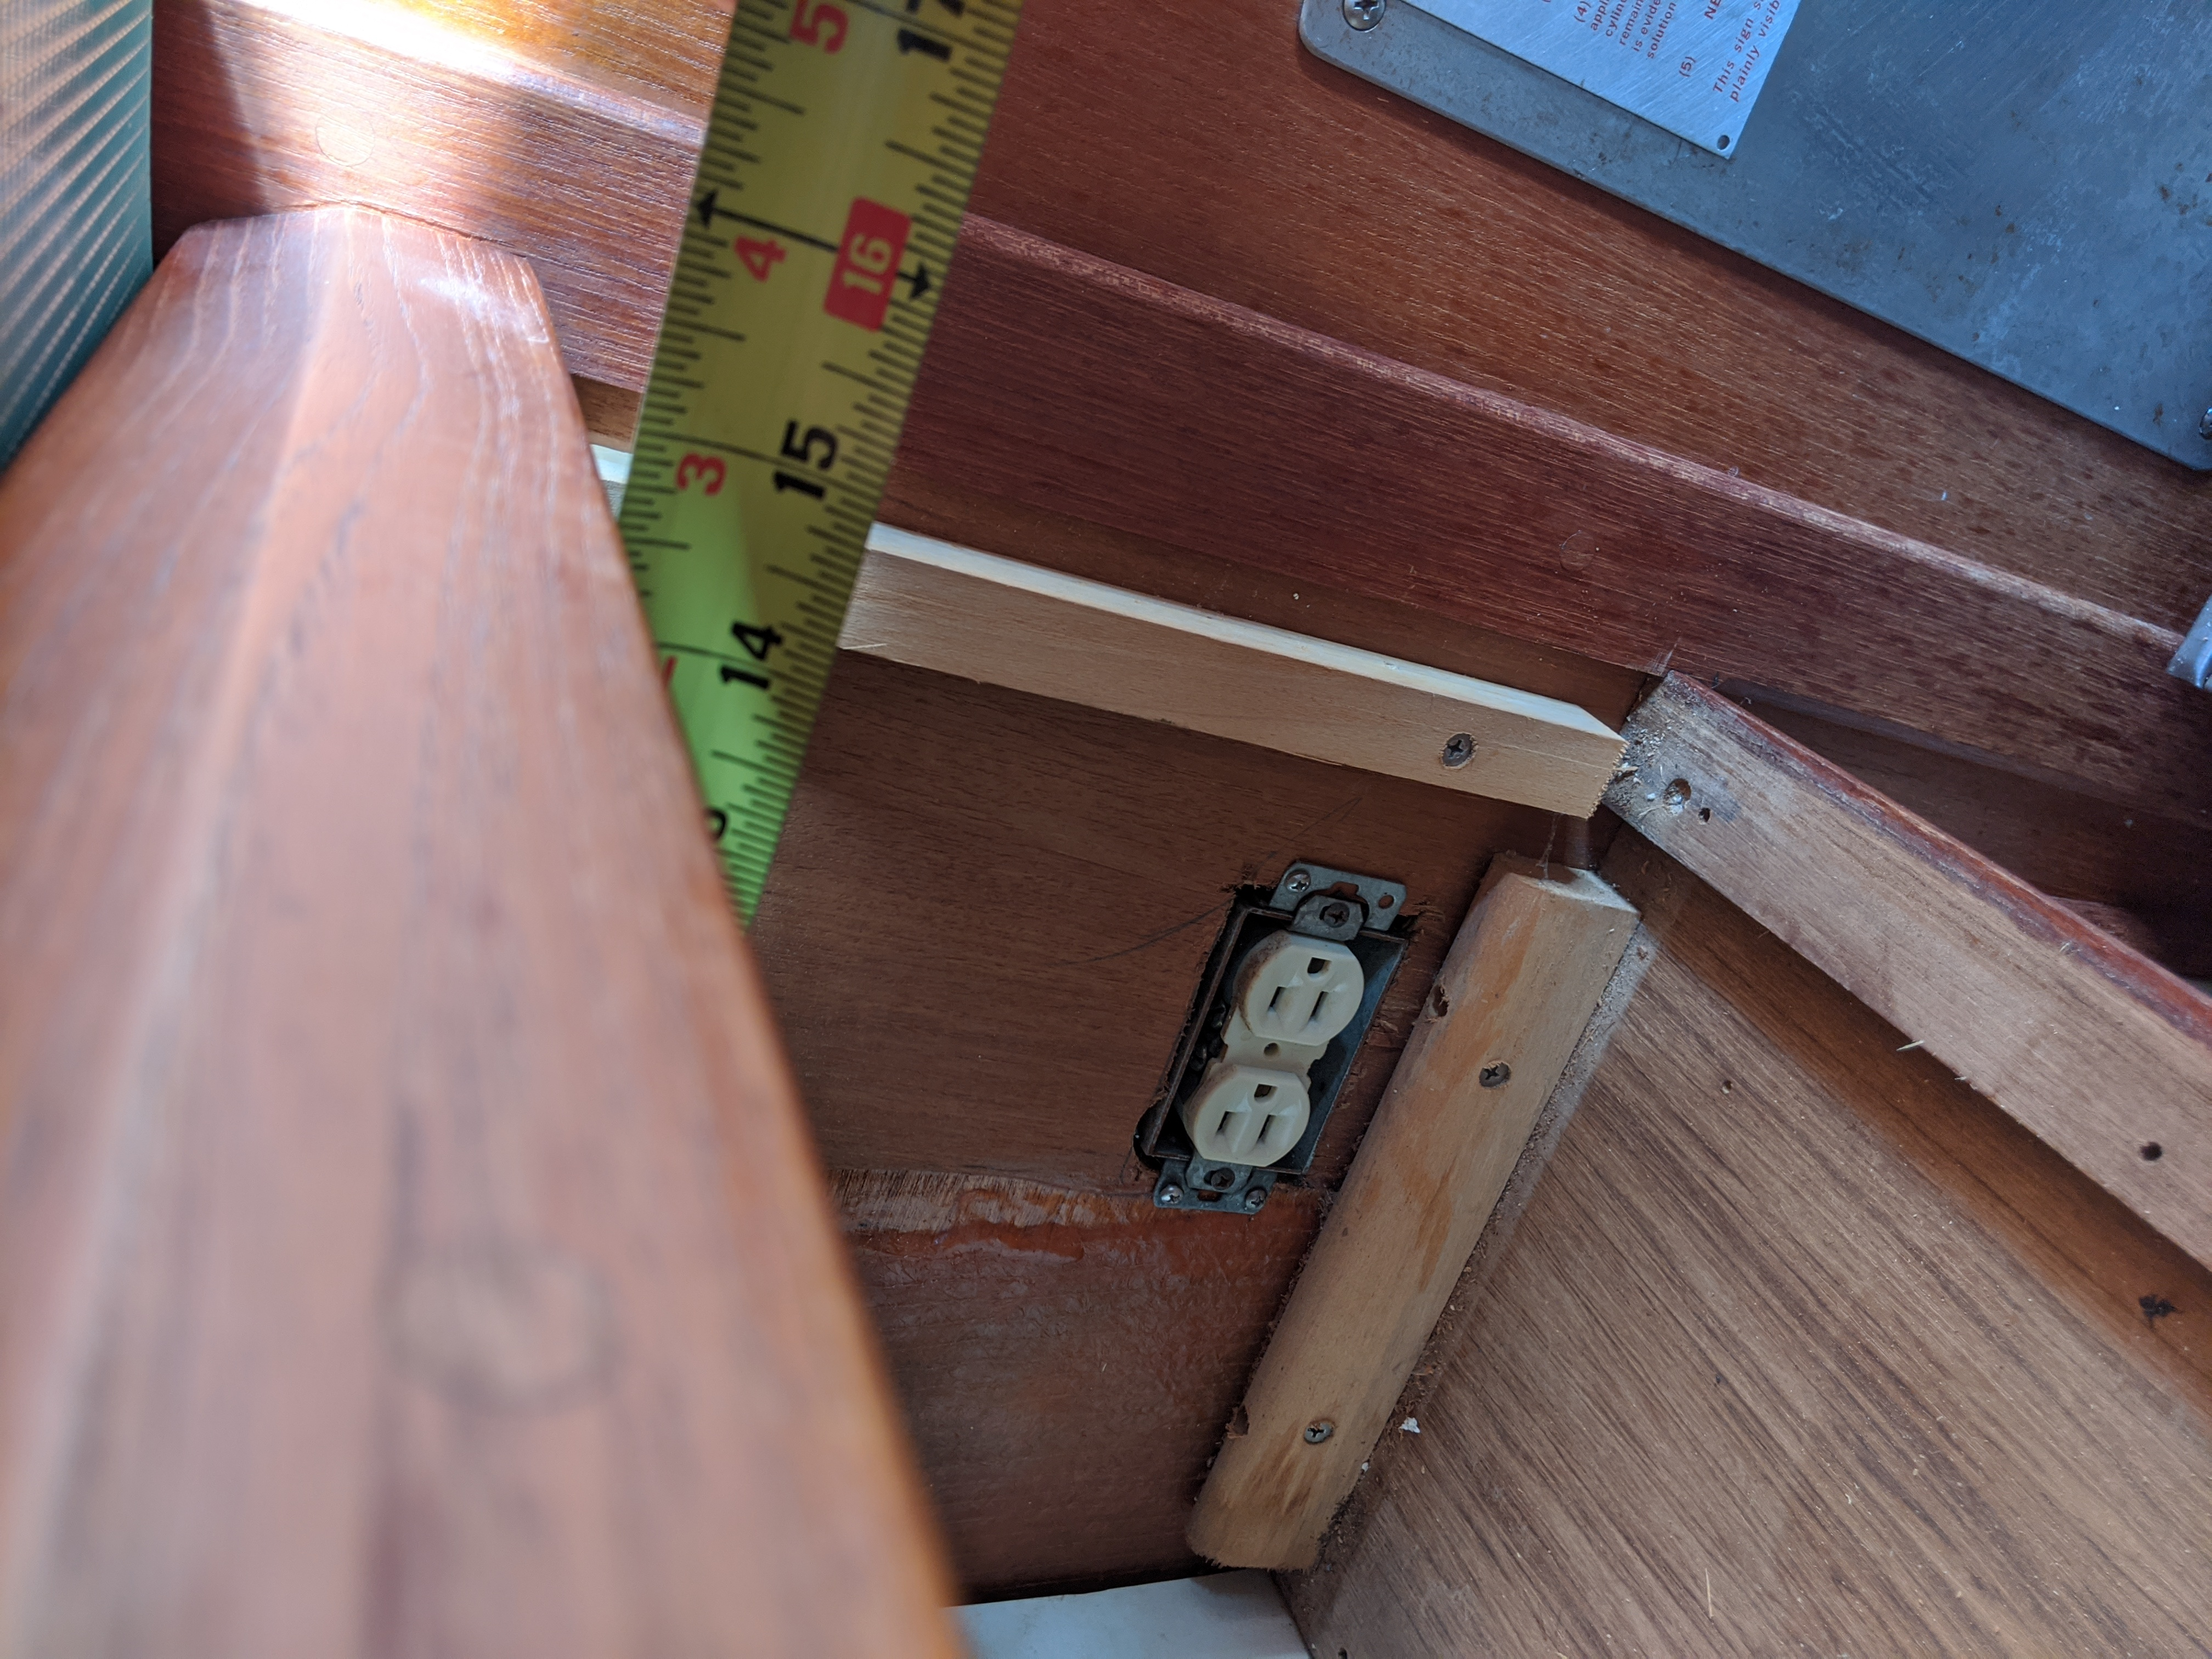 Cabinet depth on top